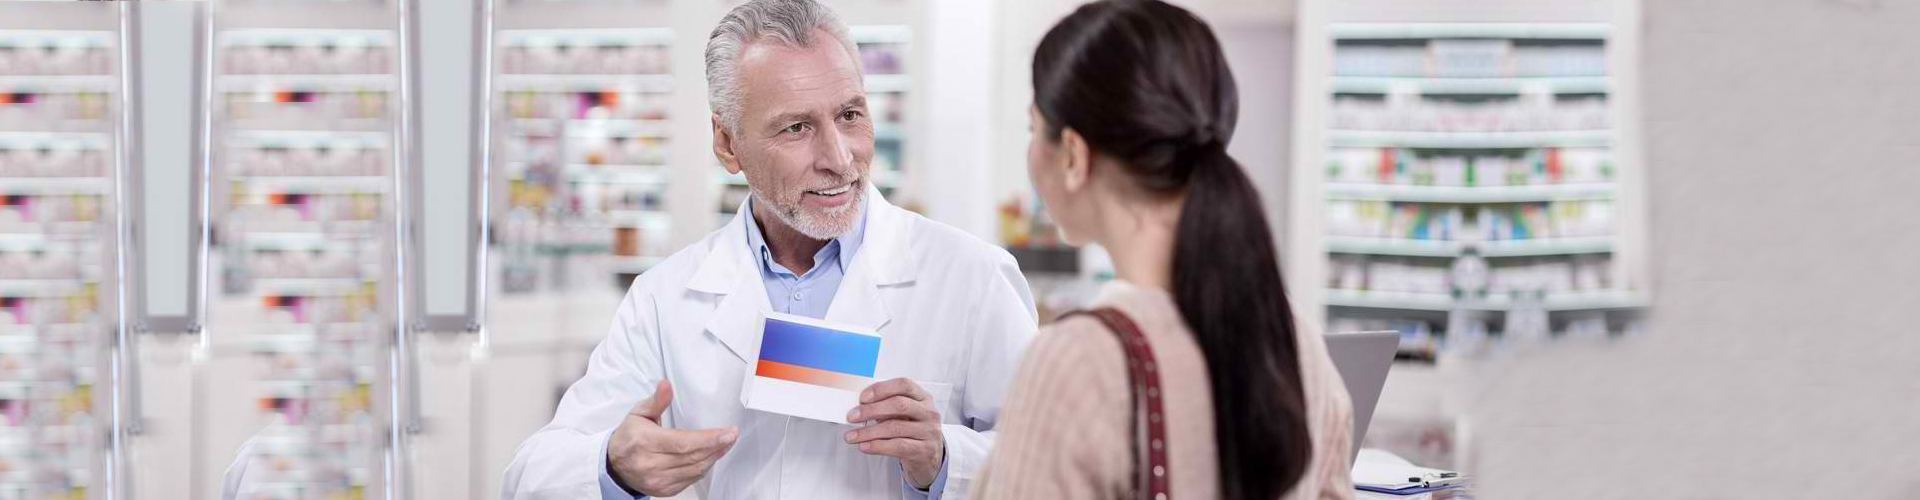 a customer getting consultations from the pharmacist